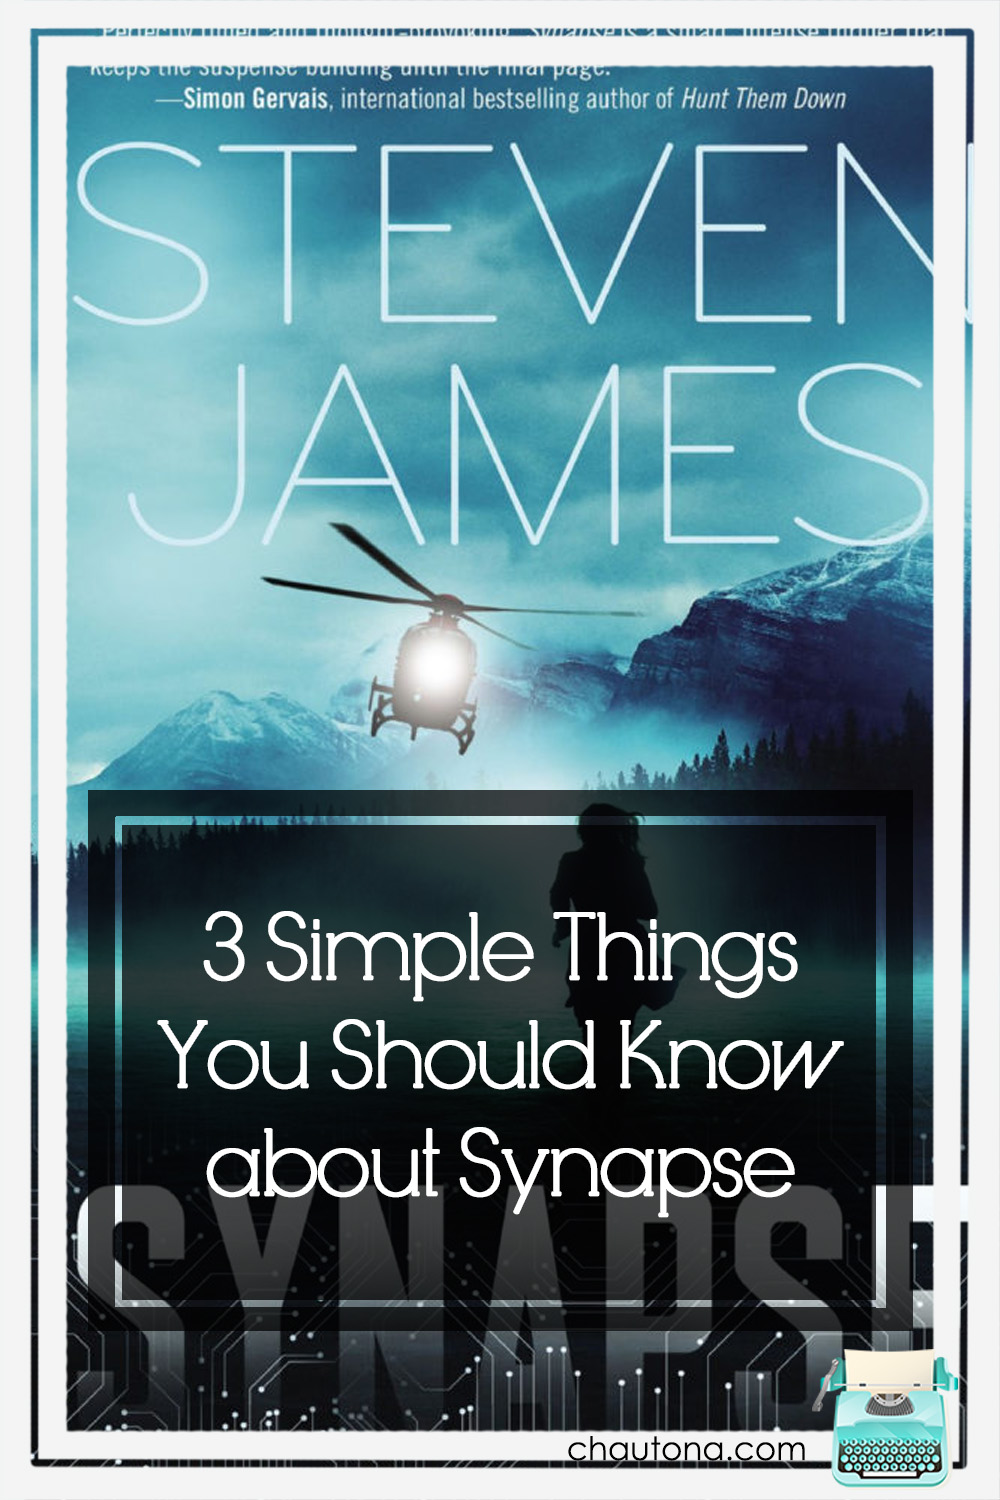 Sometimes the less you tell about a book, the better it is for everyone. Synapse is one of those. The minute I try to describe it, I give too much info! via @chautonahavig